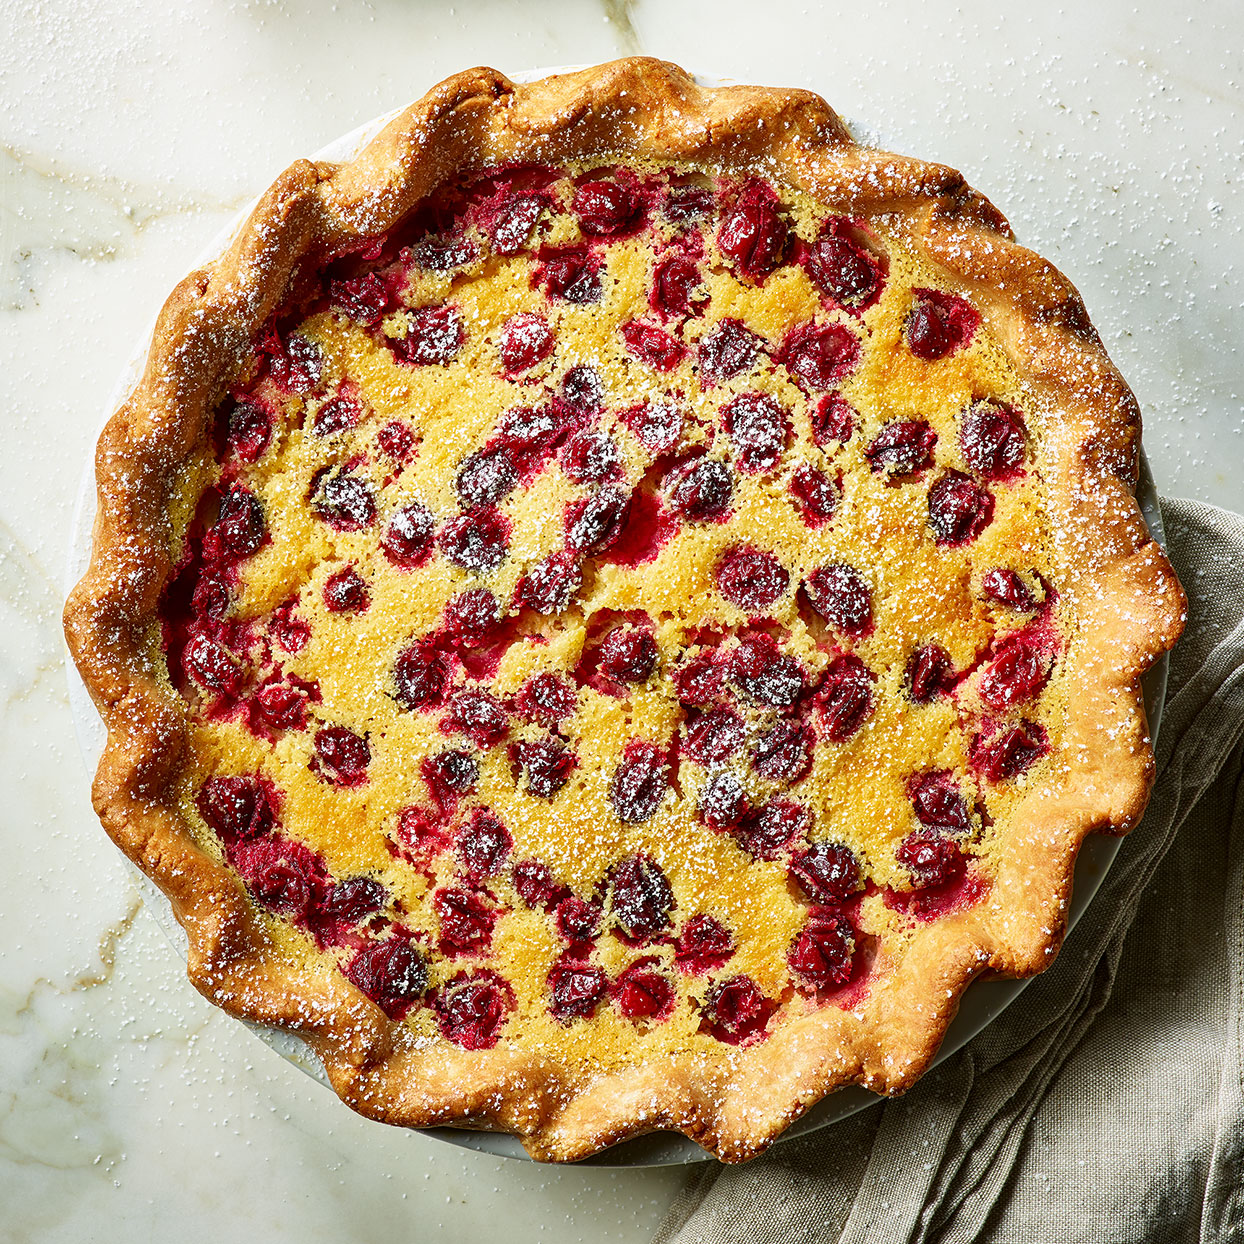 Cranberry Buttermilk Pie